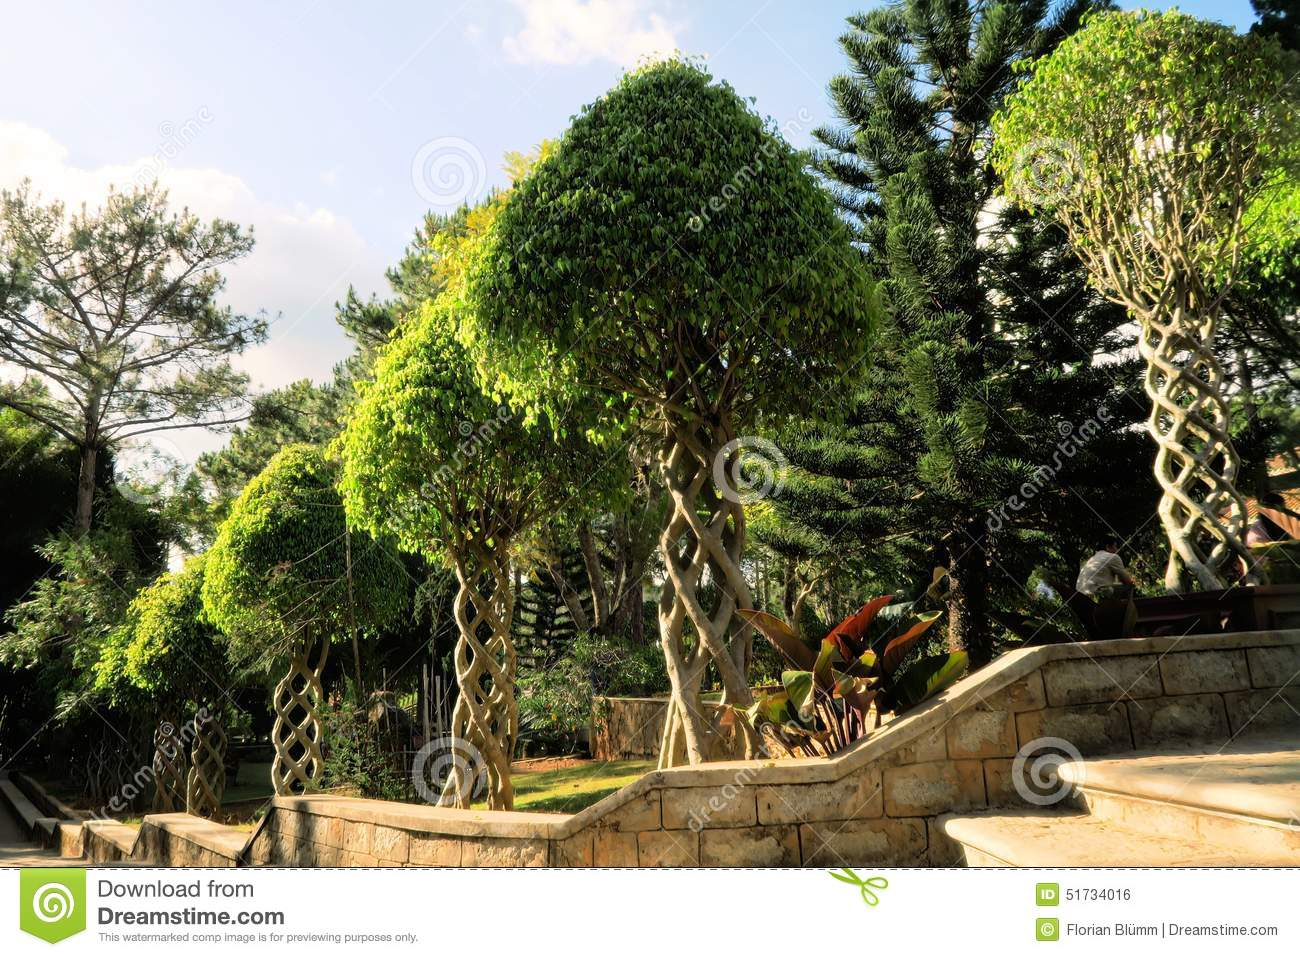 Trees with branches intertwined as helix in garden